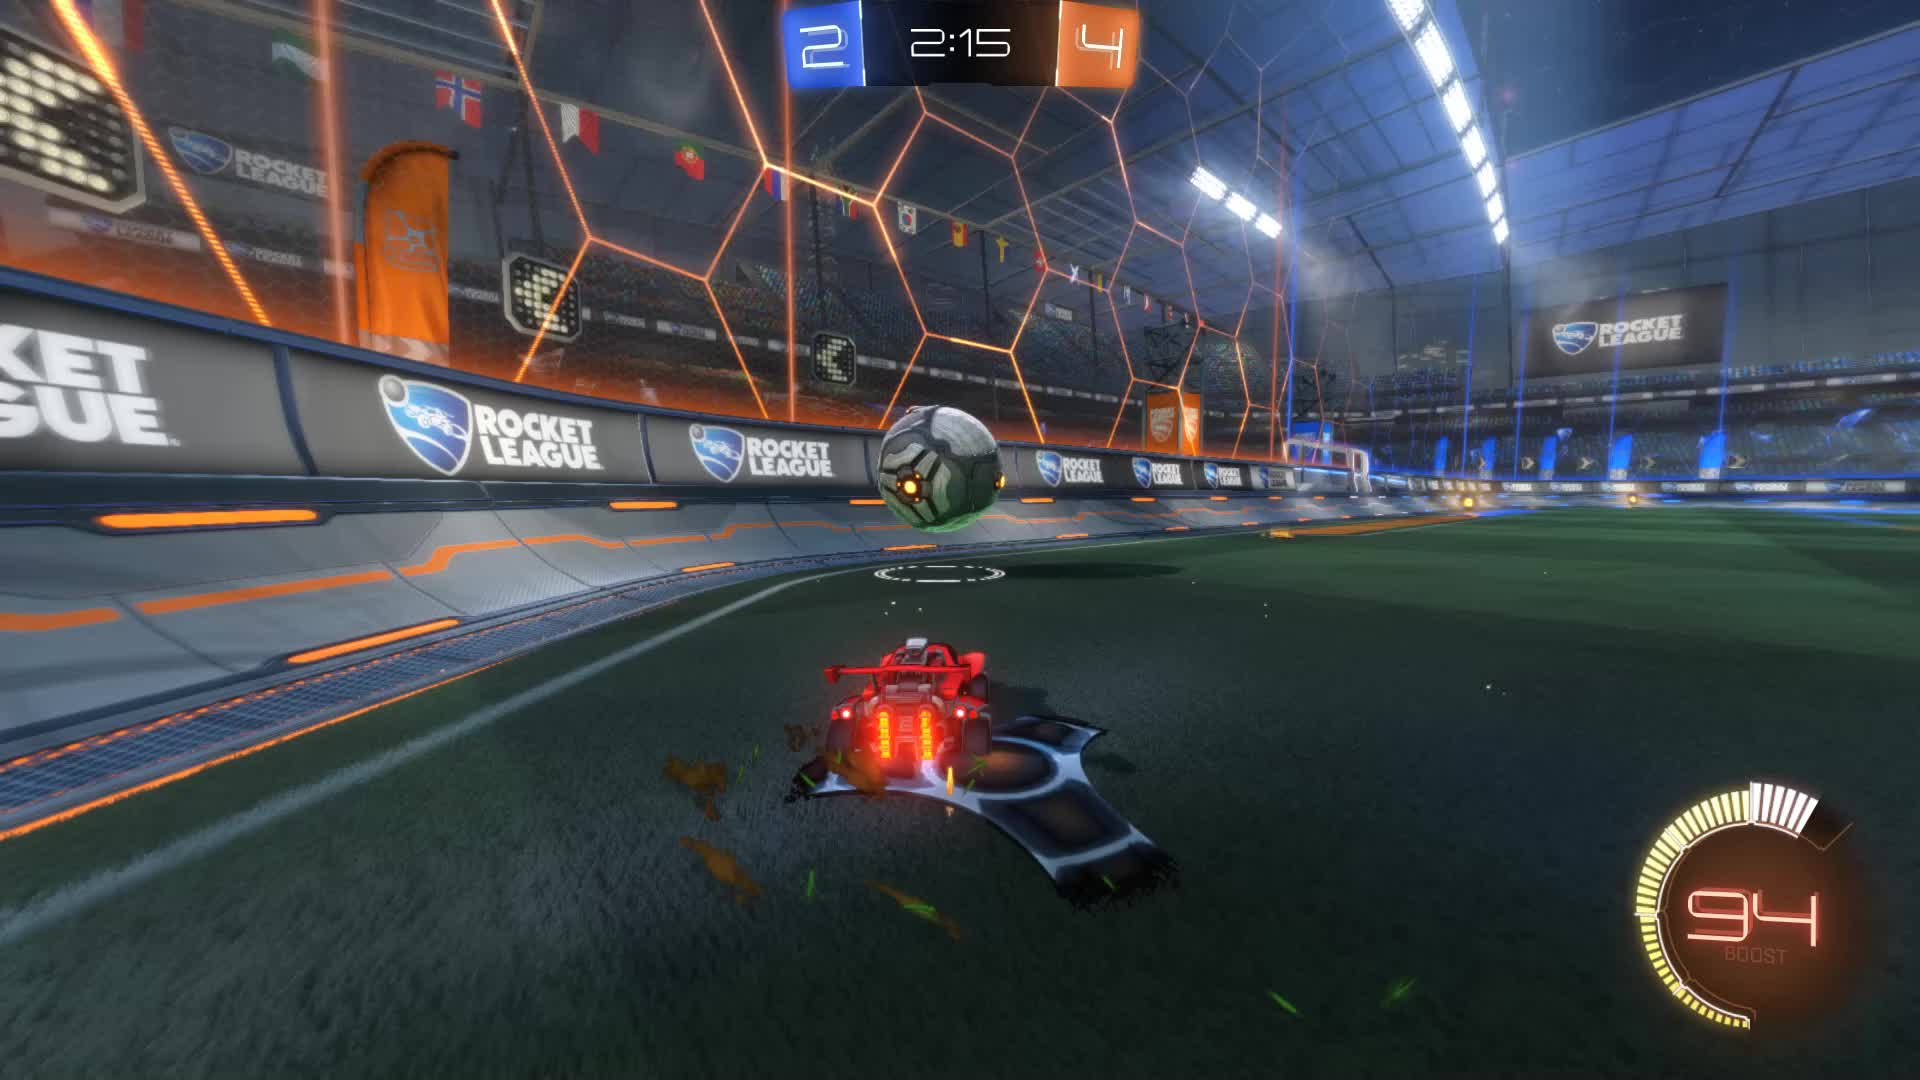 Gif Your Game, GifYourGame, Goal, Nyhx, Rocket League, RocketLeague, Goal 7: Nyhx GIFs